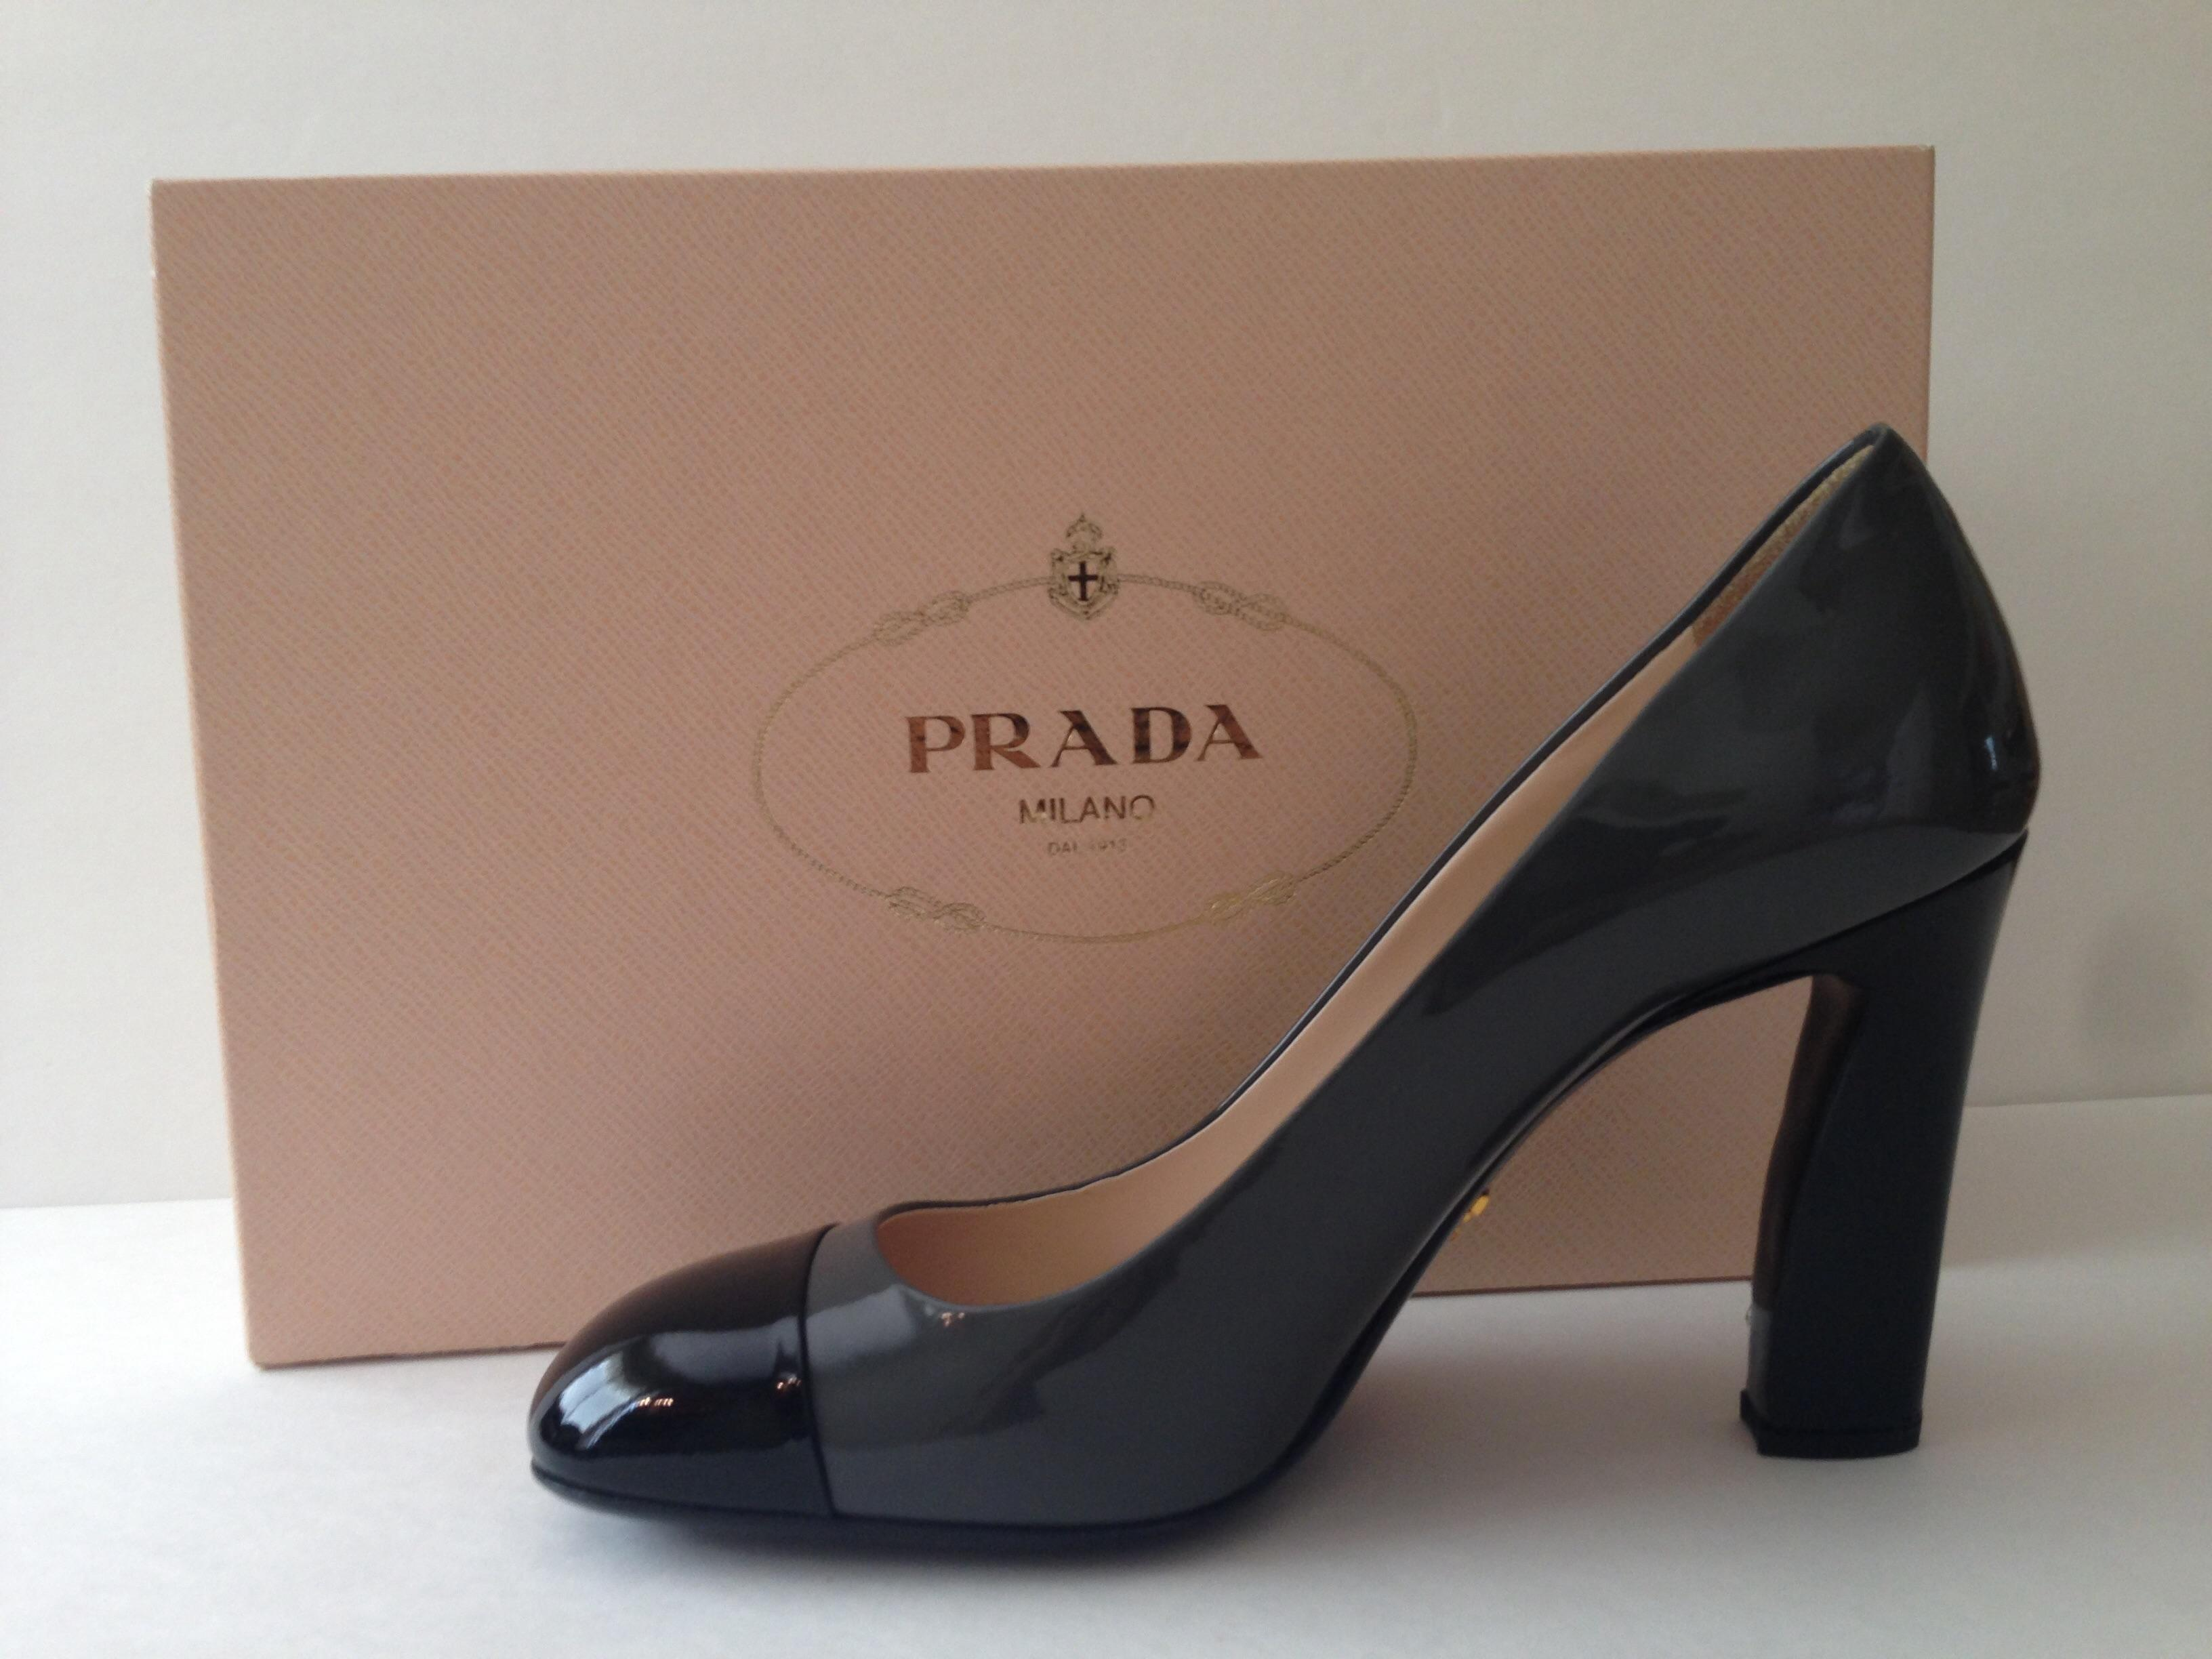 cheap sale from china Prada Vernice Bicolor Pumps free shipping high quality Rzx5h8HP1T